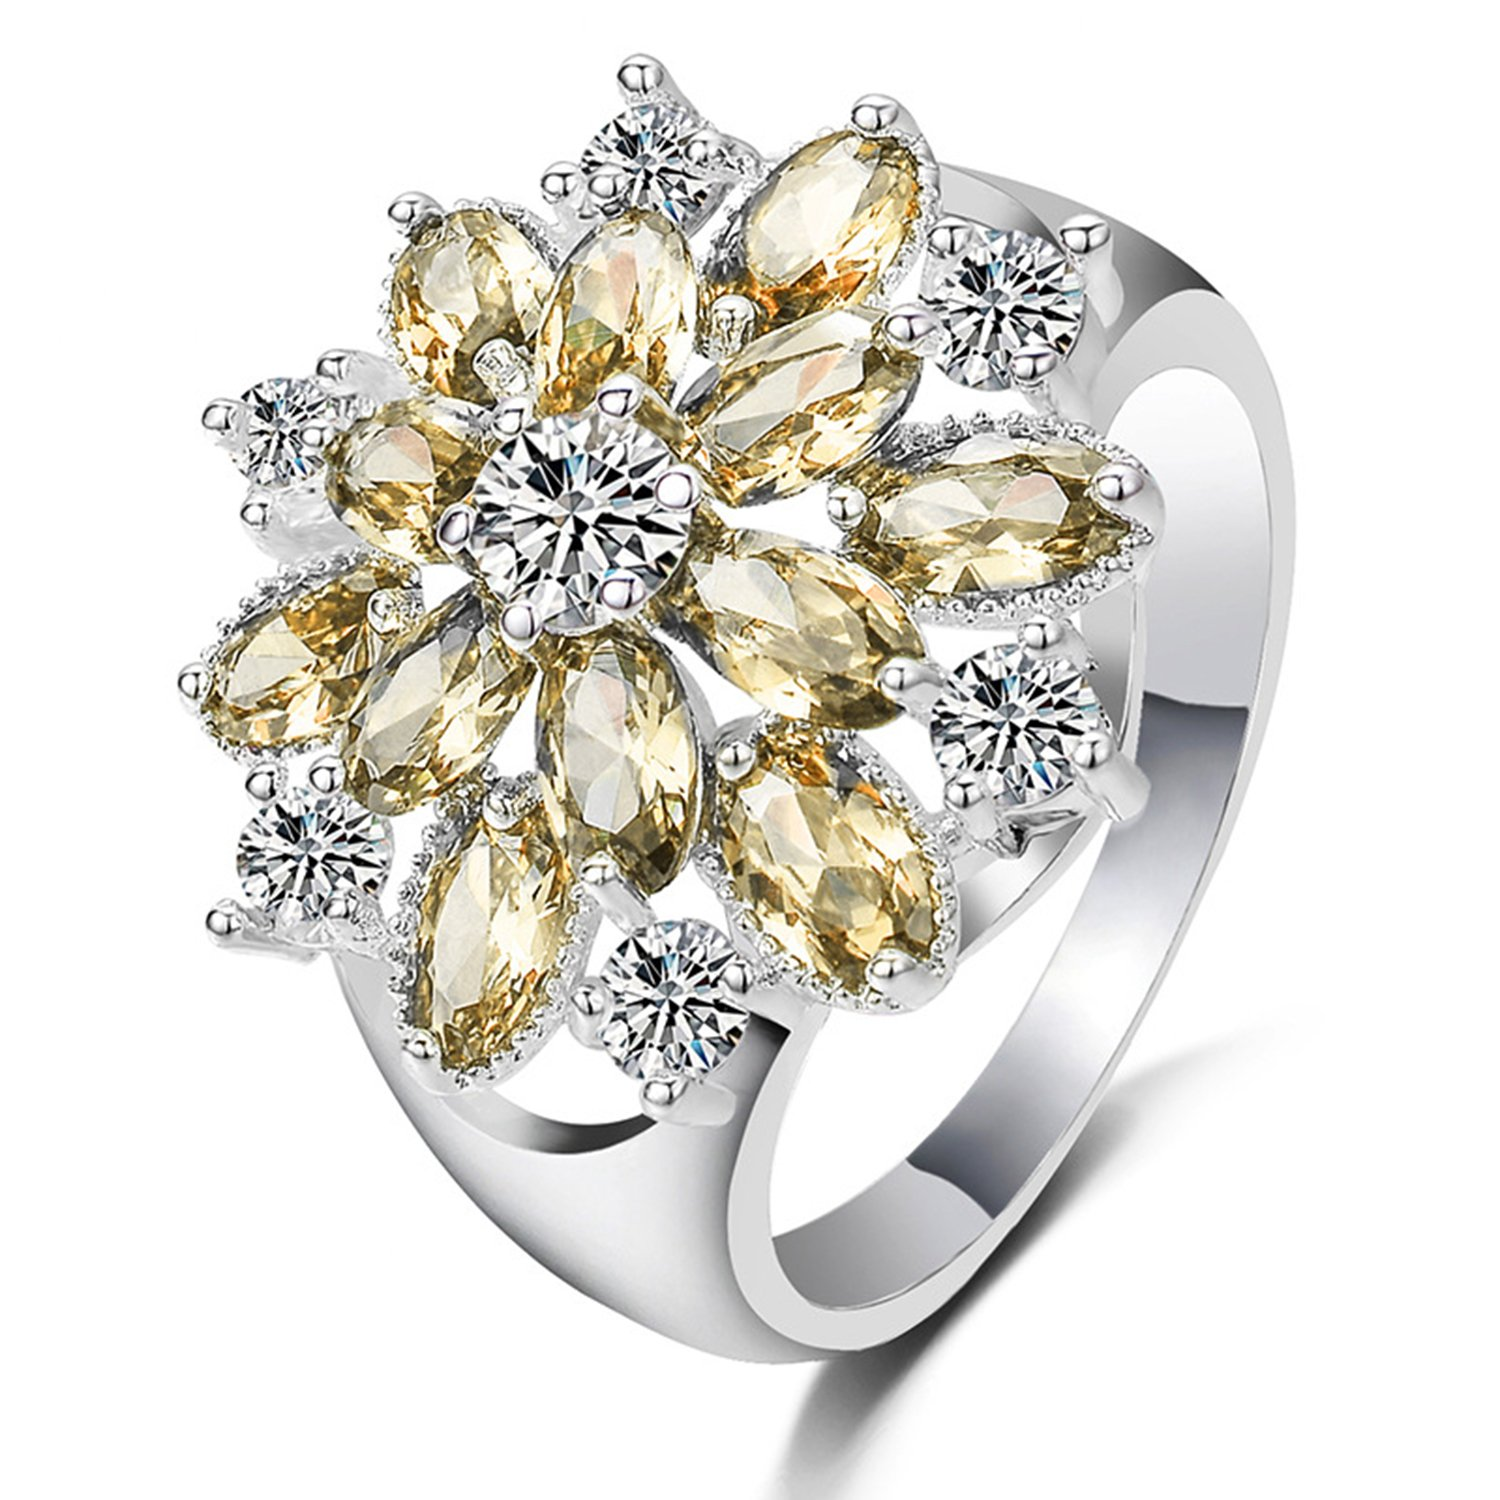 LILILEO Jewelry S925 Simple Flower Shape Inlaid Yellow Zircon Ring For Women's Wedding Rings by LILILEO